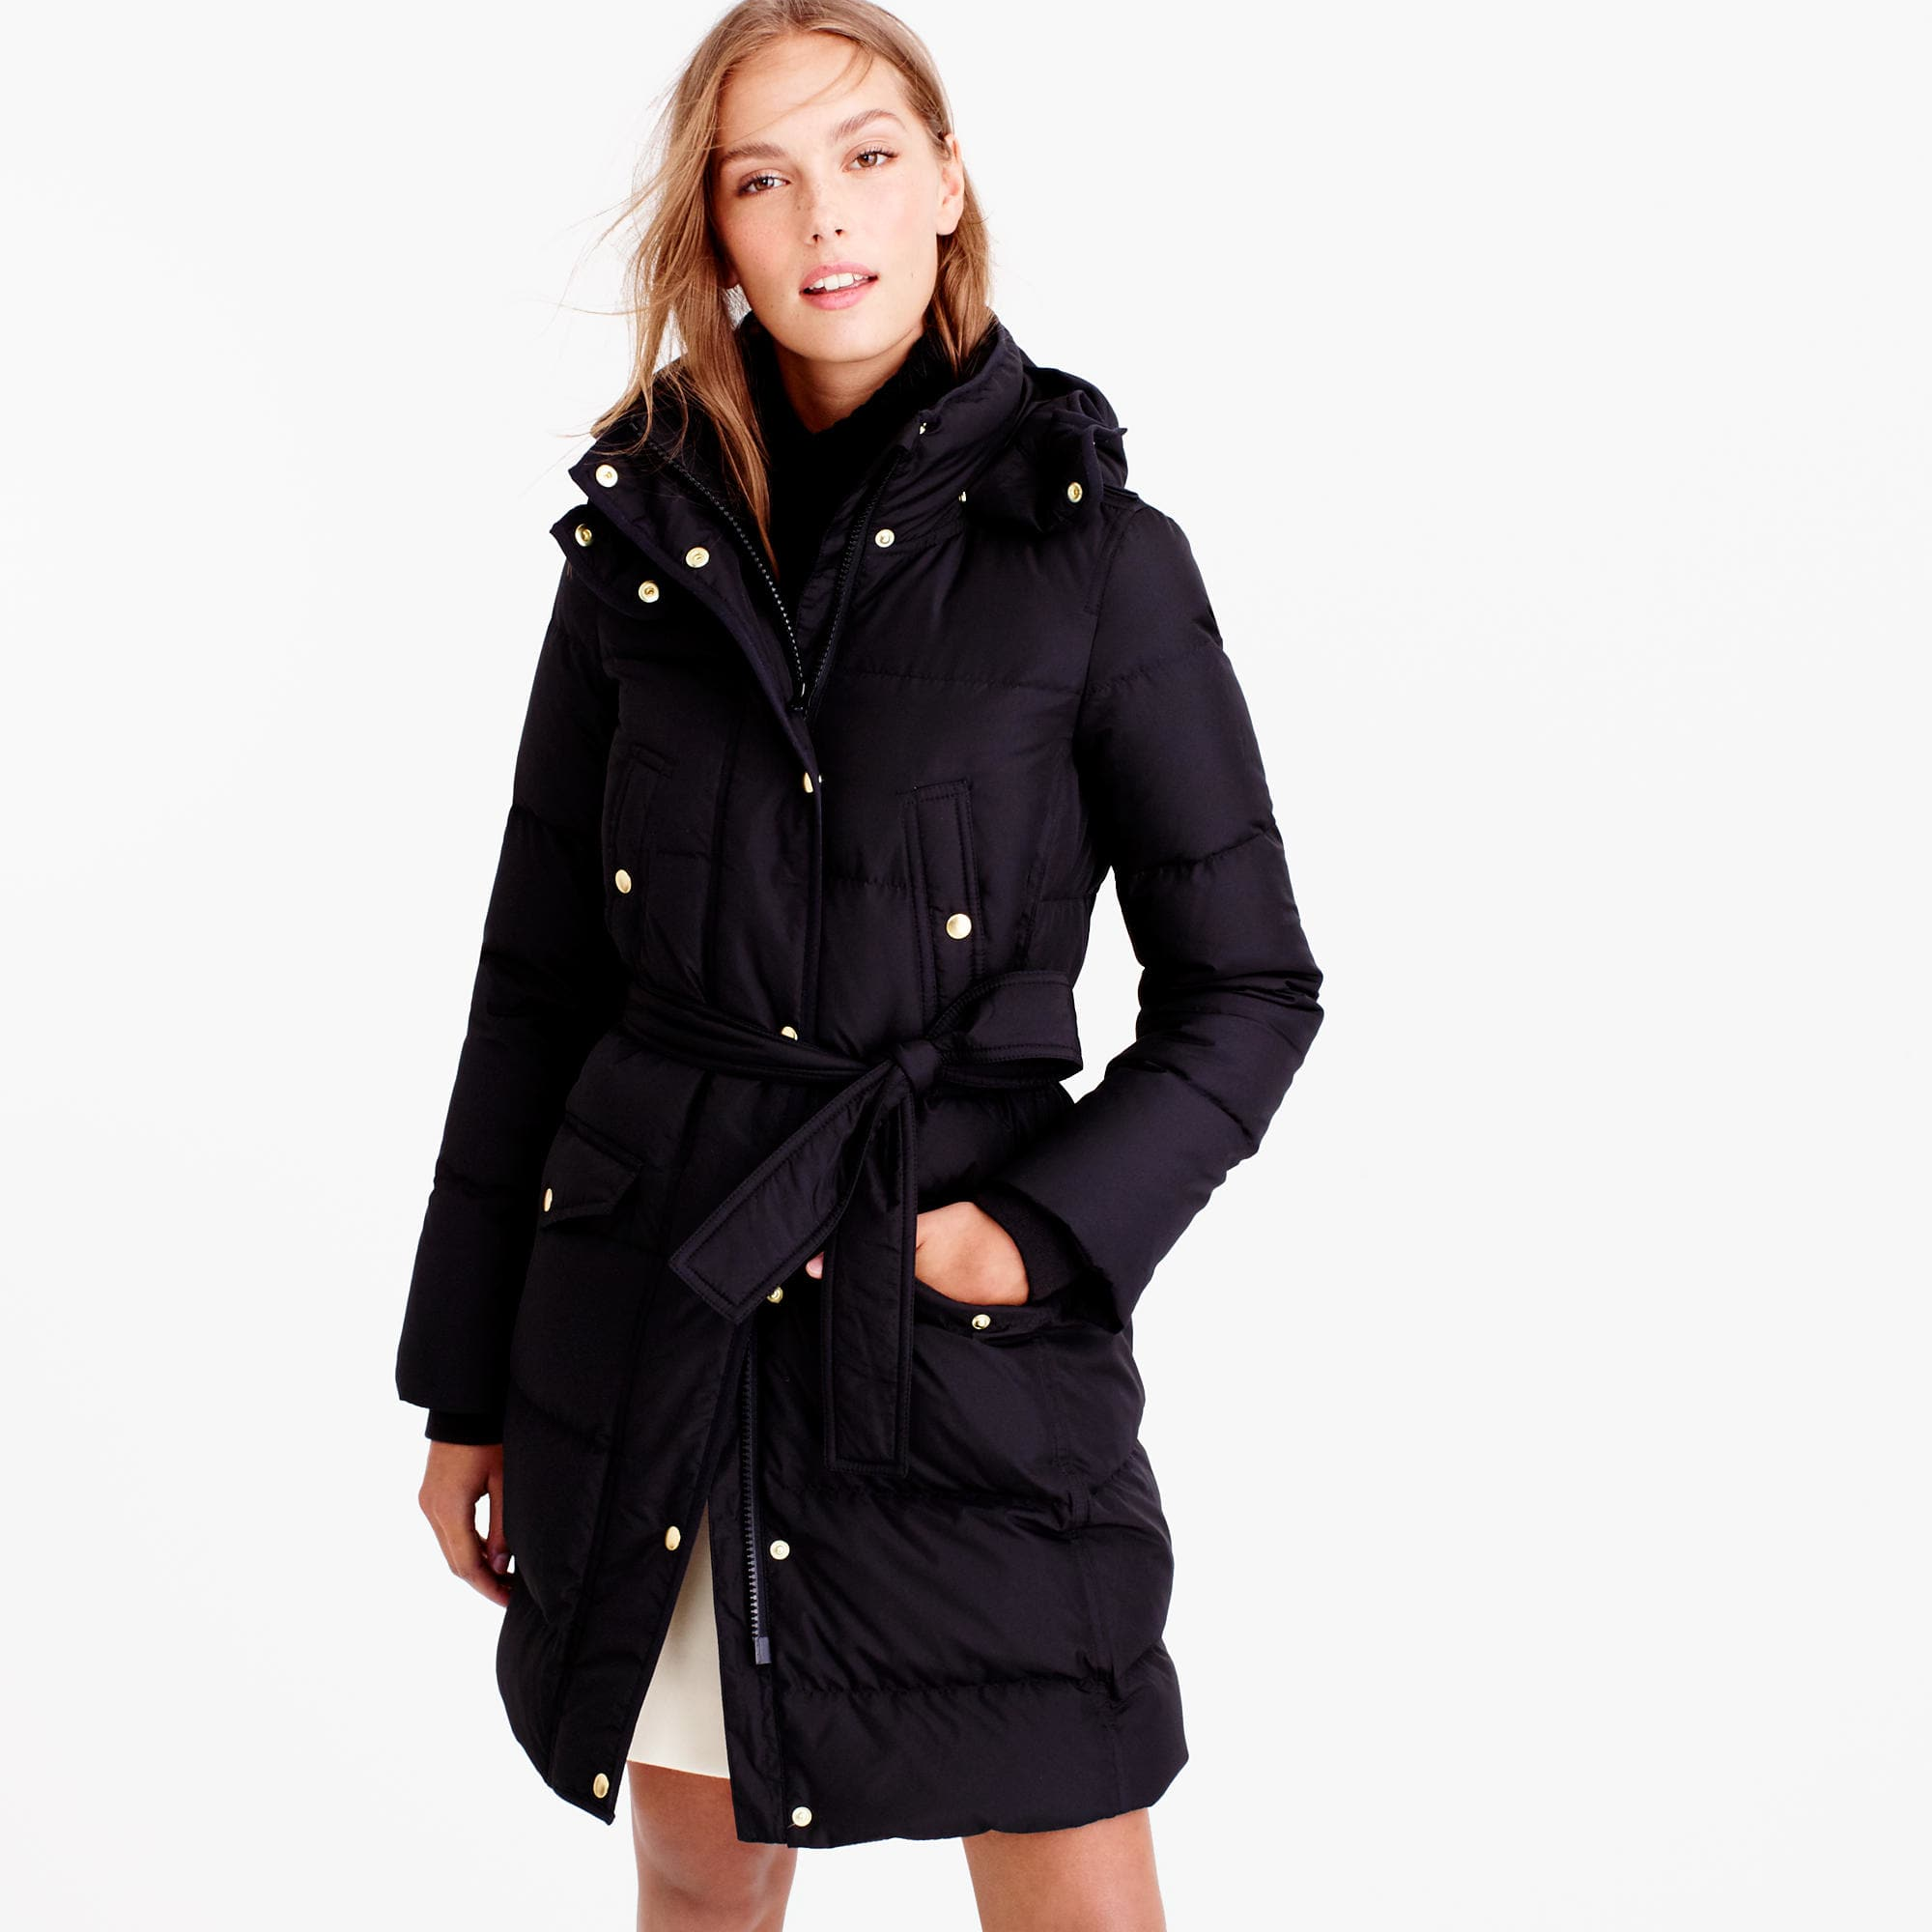 6dc41232 J.Crew Wintress Belted Puffer Coat, $298, available at J.Crew.